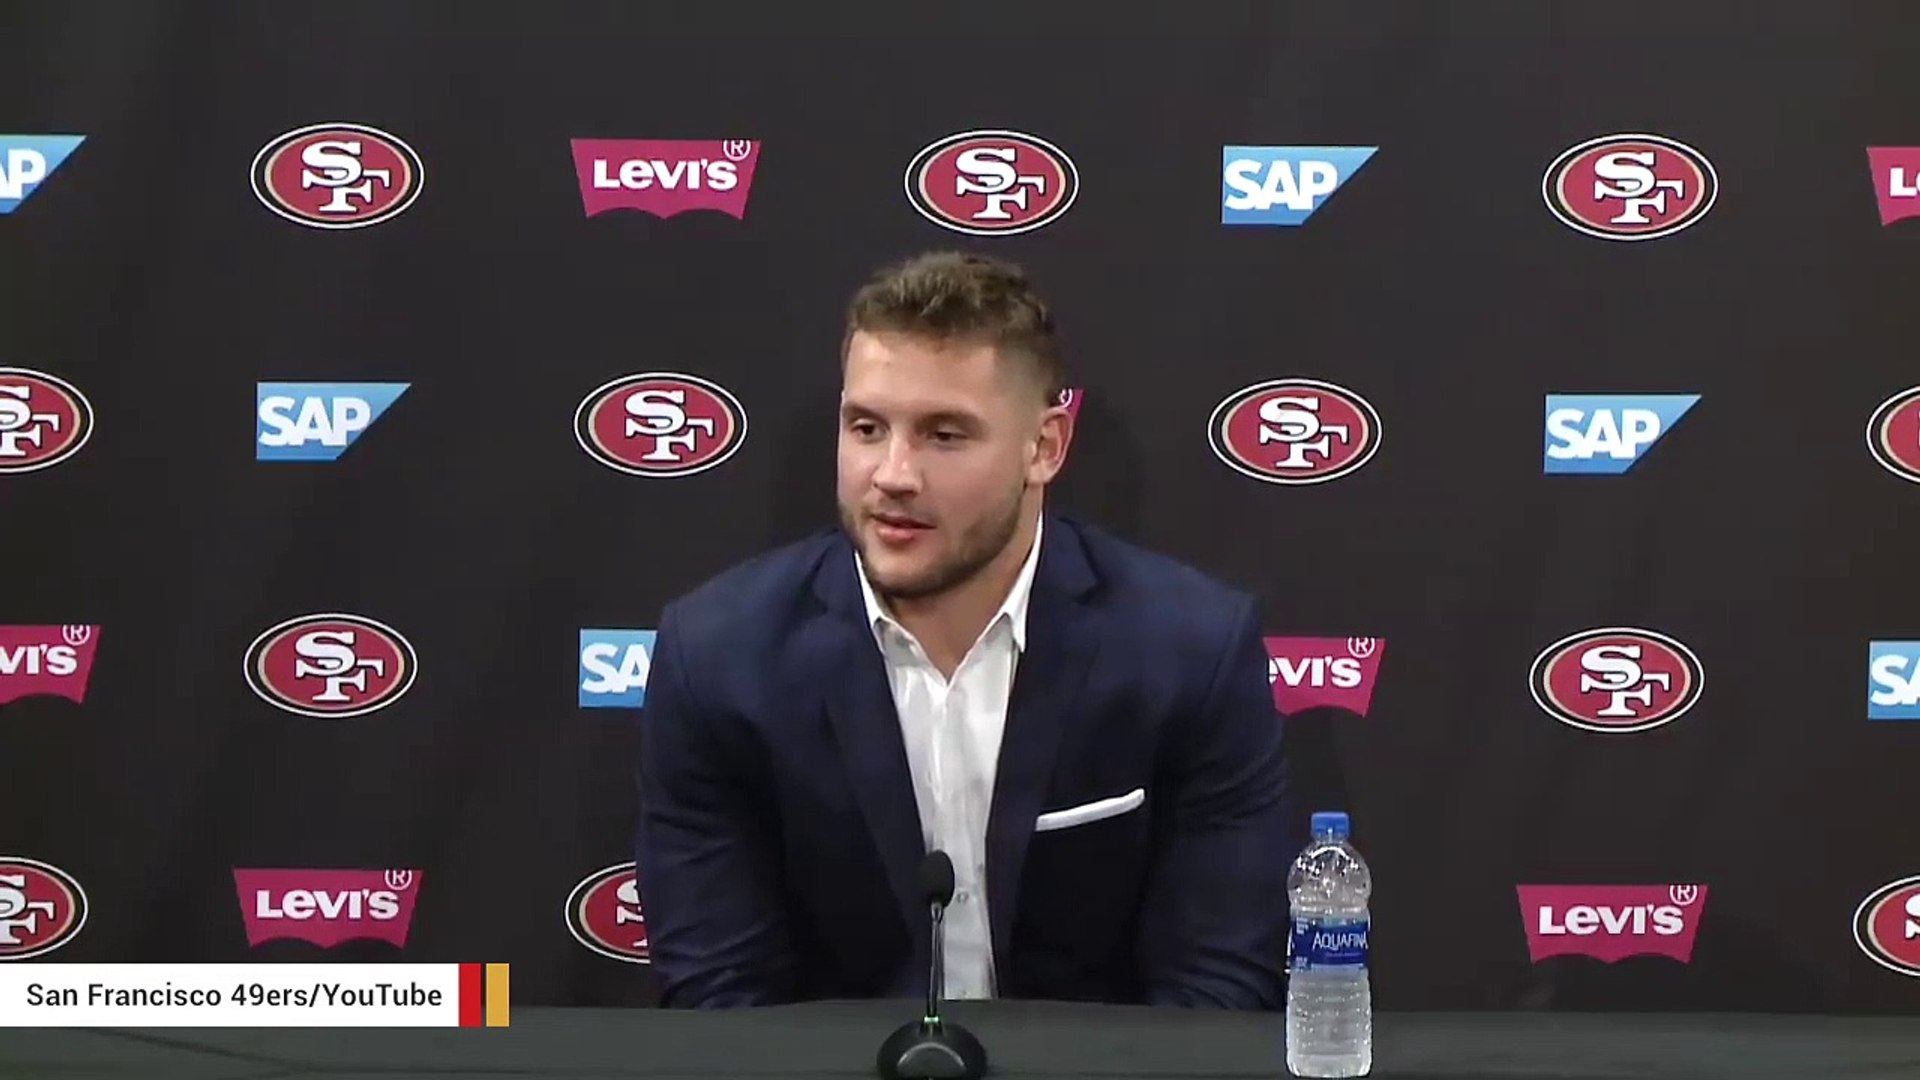 Trump Praises NFL Pick Nick Bosa Who Called Kaepernick A 'Clown'